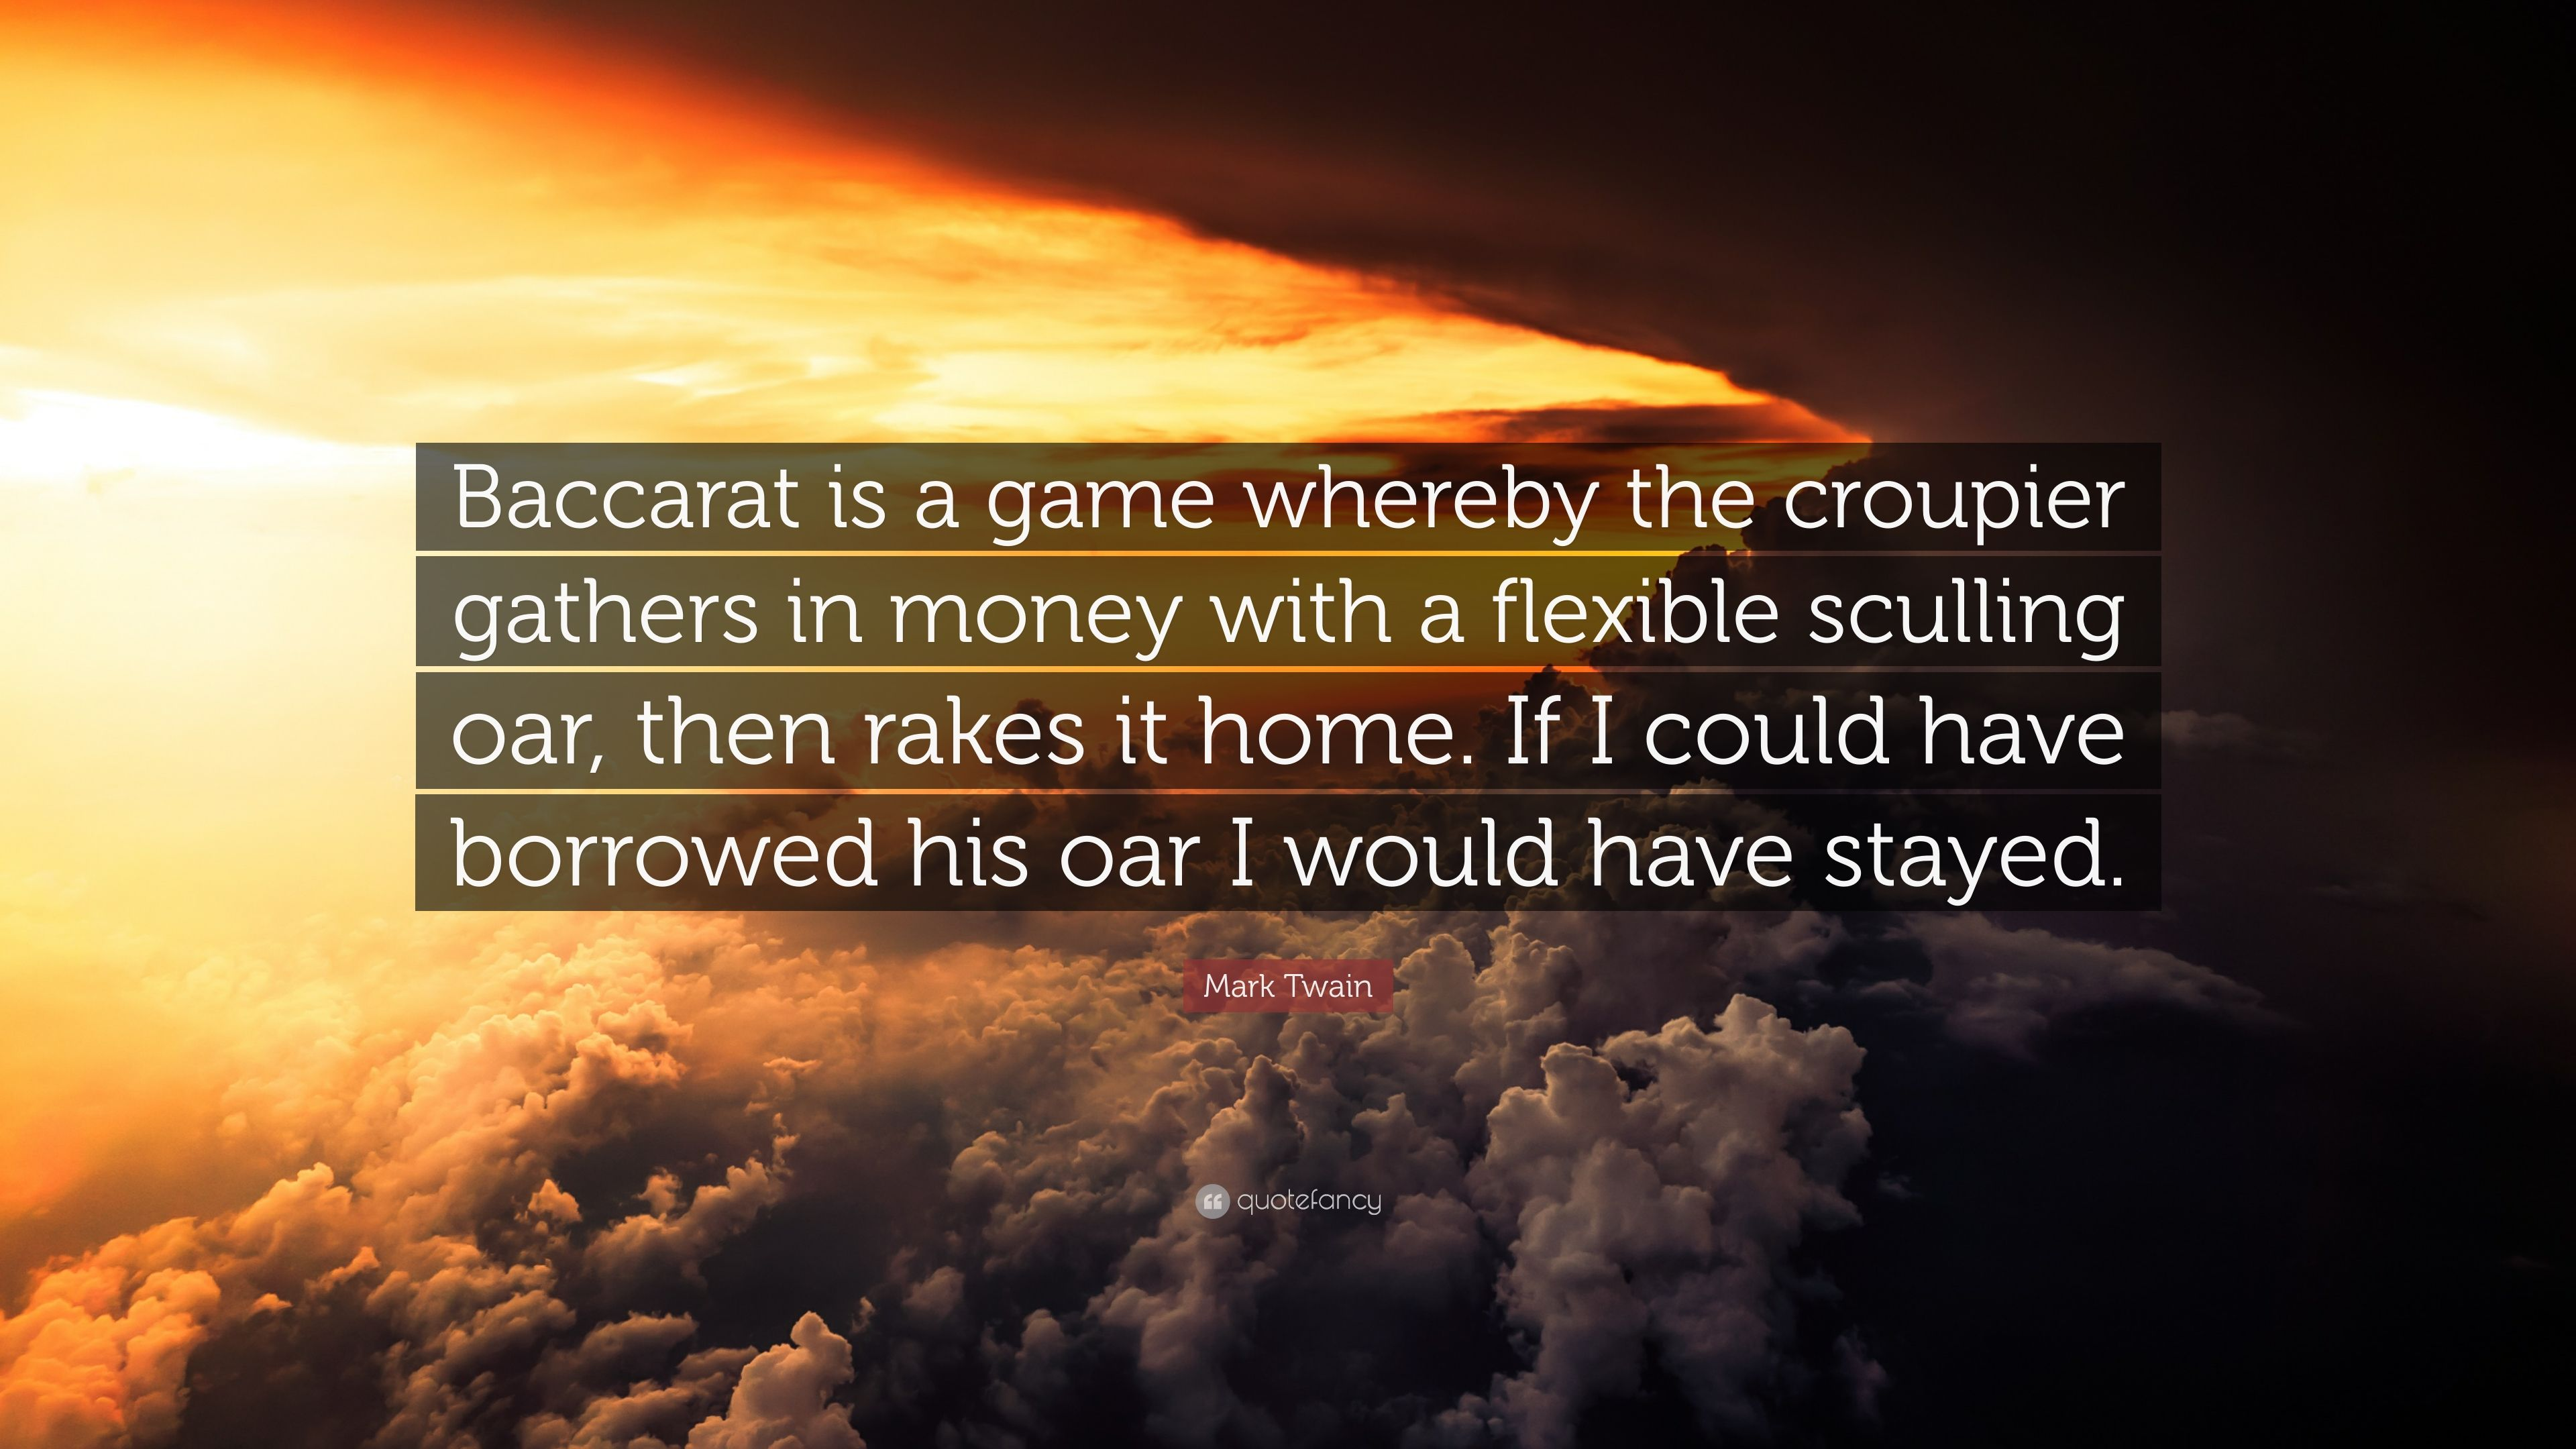 Mark Twain Quote Baccarat Is A Game Whereby The Croupier Gathers In Money With A Flexible Sculling Oar Then Rakes It Home If I Could Ha 7 Wallpapers Quotefancy